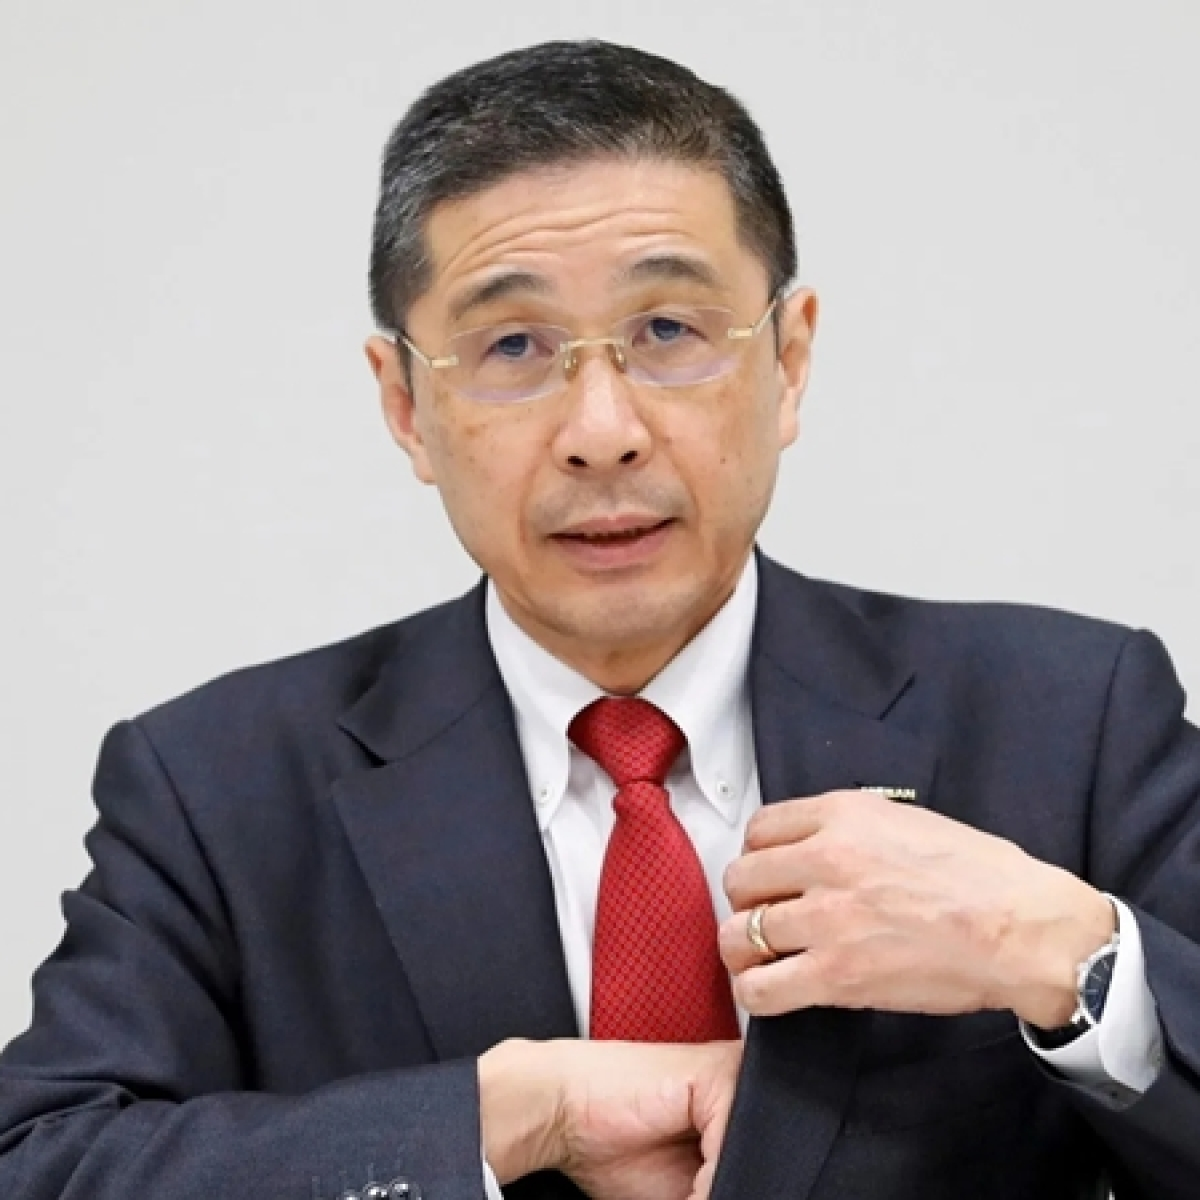 Nissan CEO Hiroto Saikawa intends to quit over pay issue